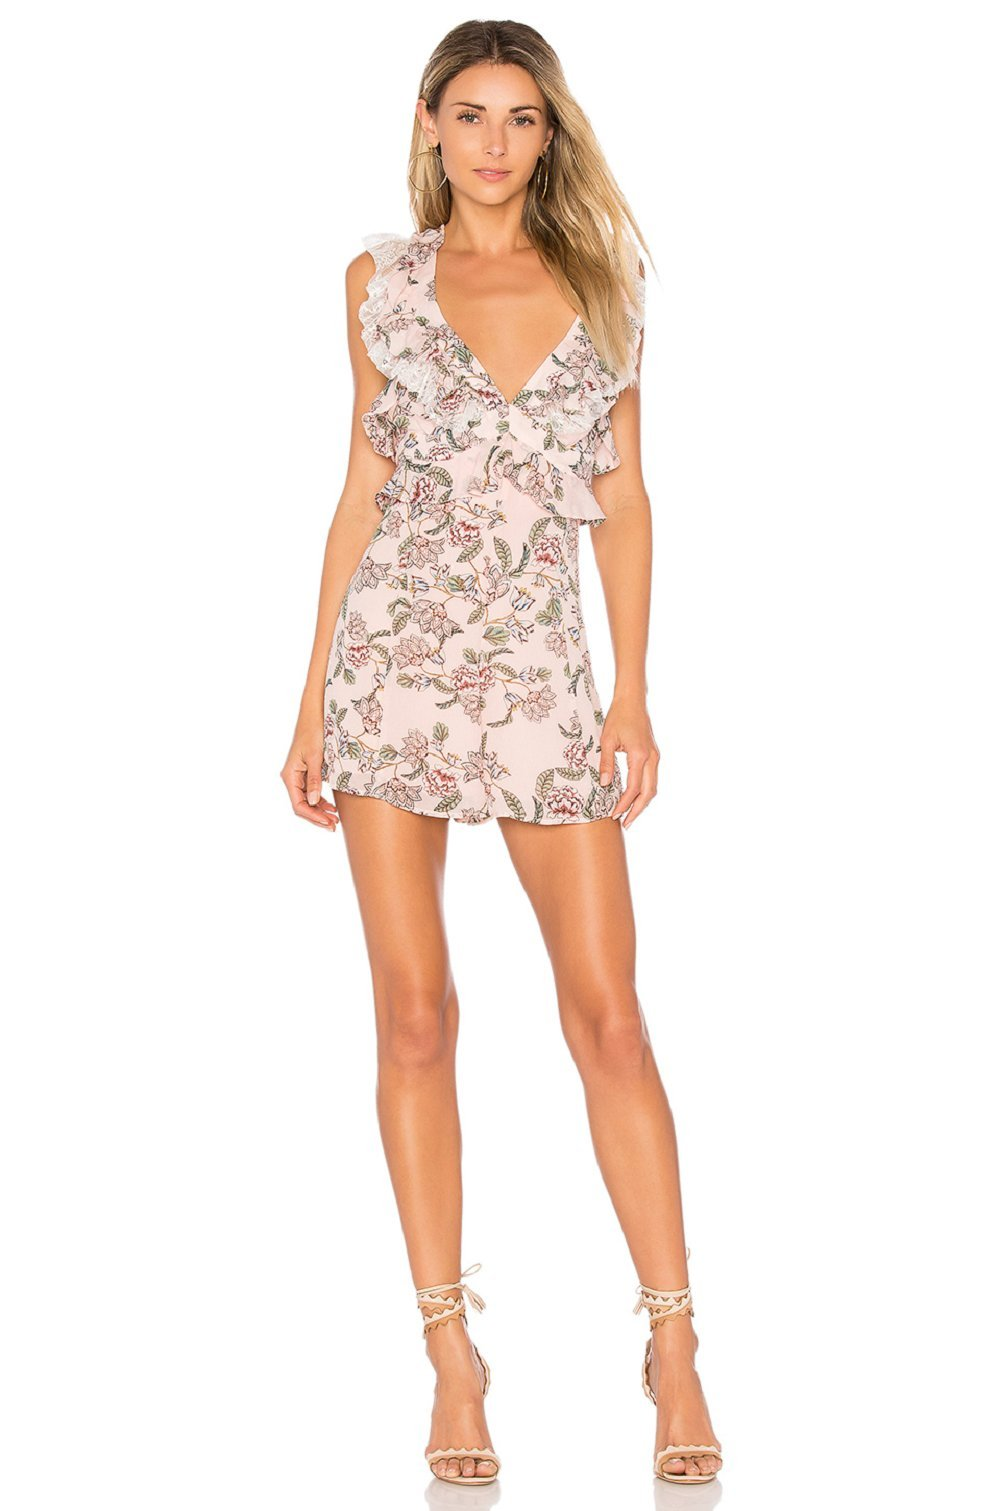 For Love & Lemons Bee Balm Romper in Pink Floral, s